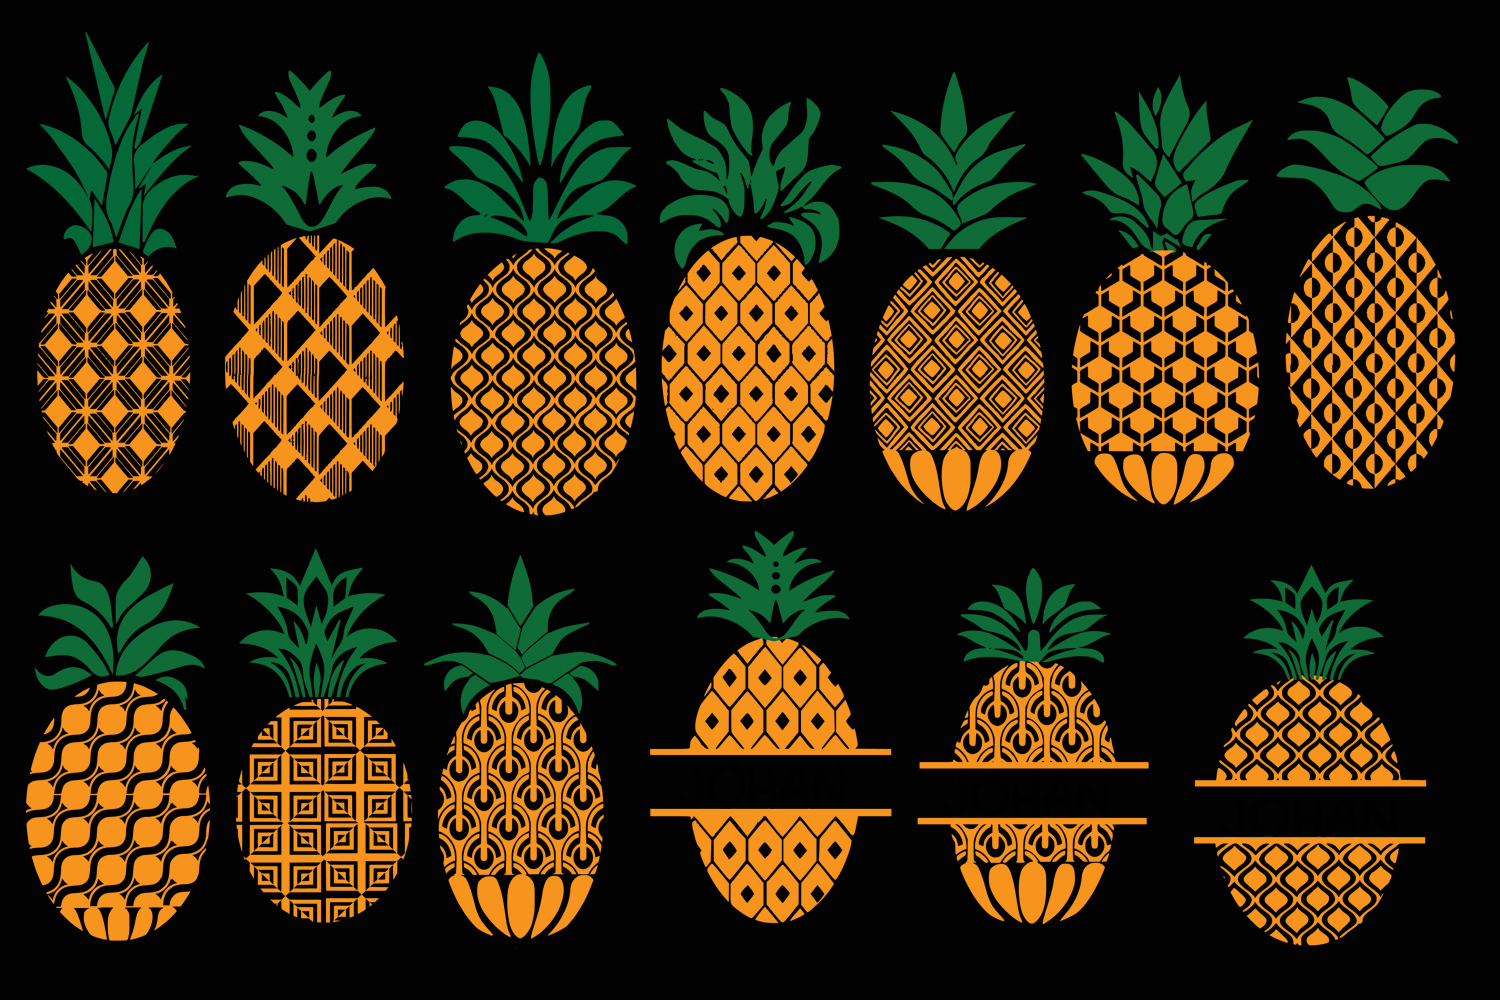 Download Free Pineapple Graphic By Johanruartist Creative Fabrica for Cricut Explore, Silhouette and other cutting machines.